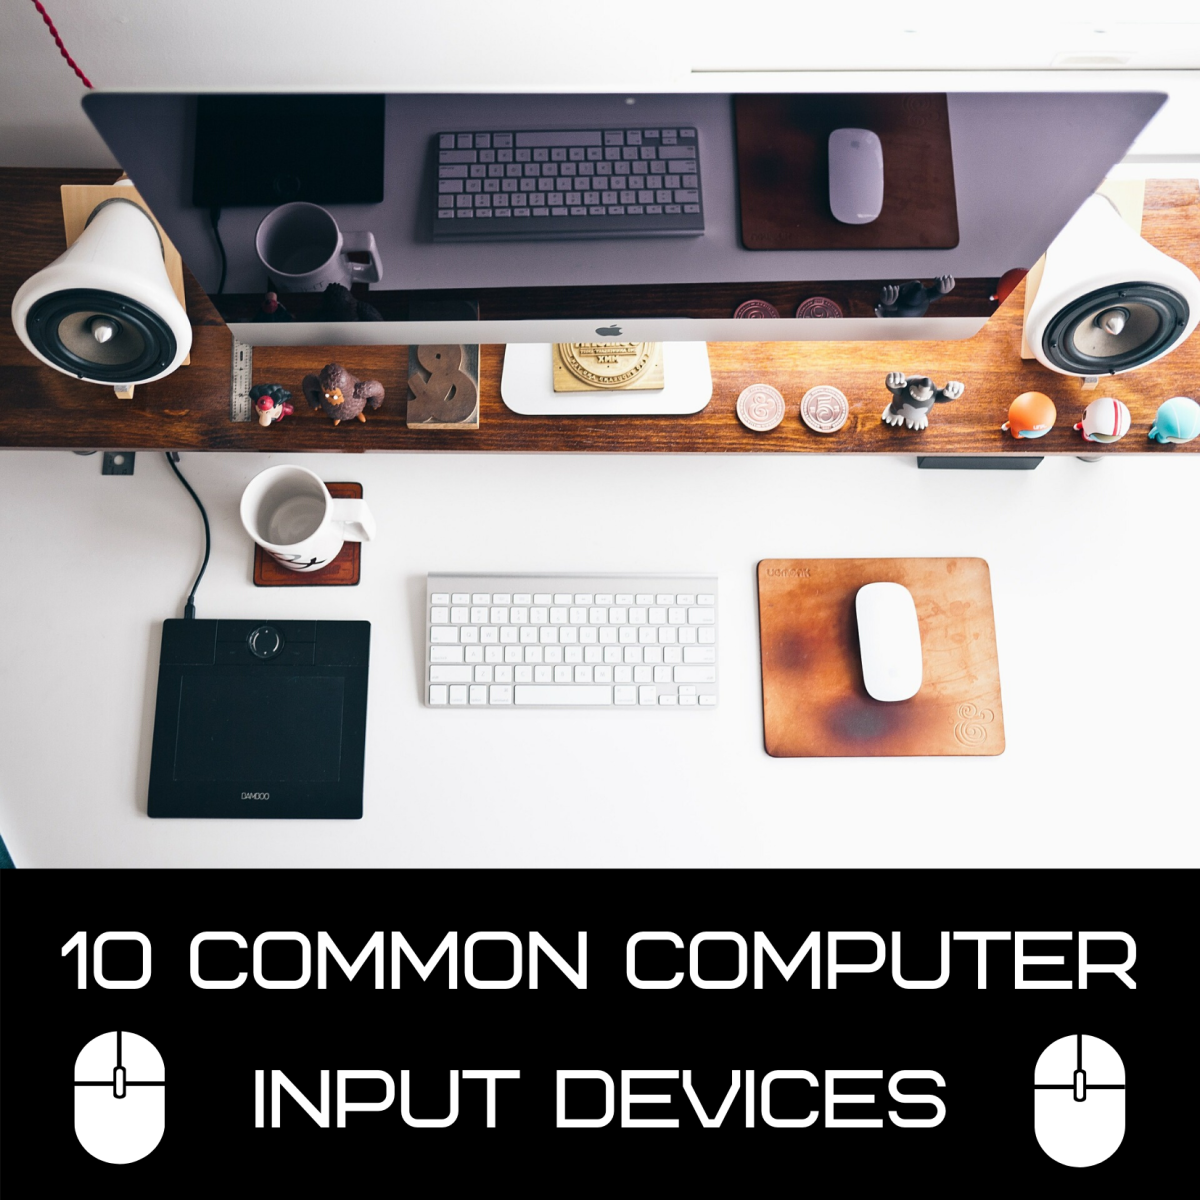 Computer Basics: 10 Examples of Input Devices